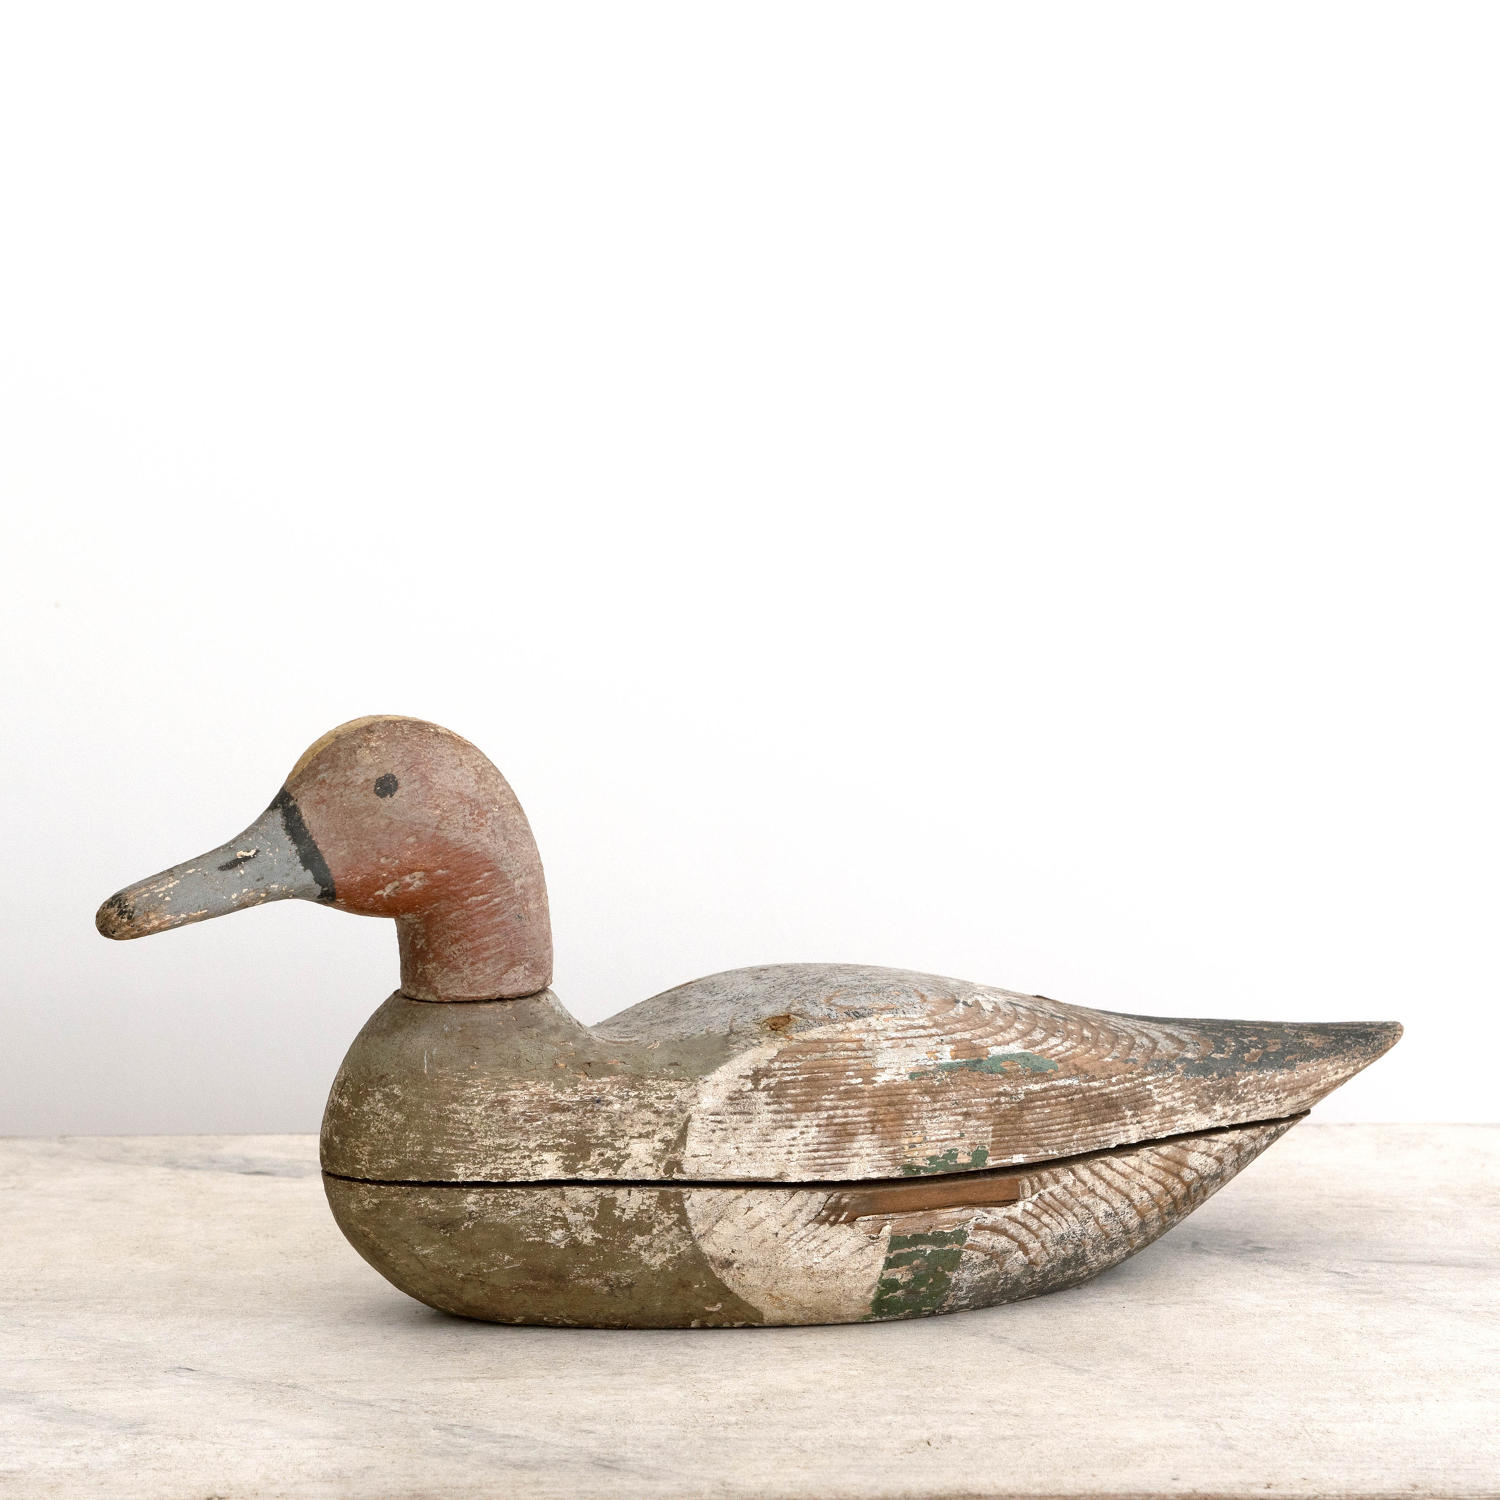 ANTIQUE DECOY DUCK IN GORGEOUS ORIGINAL PATINA